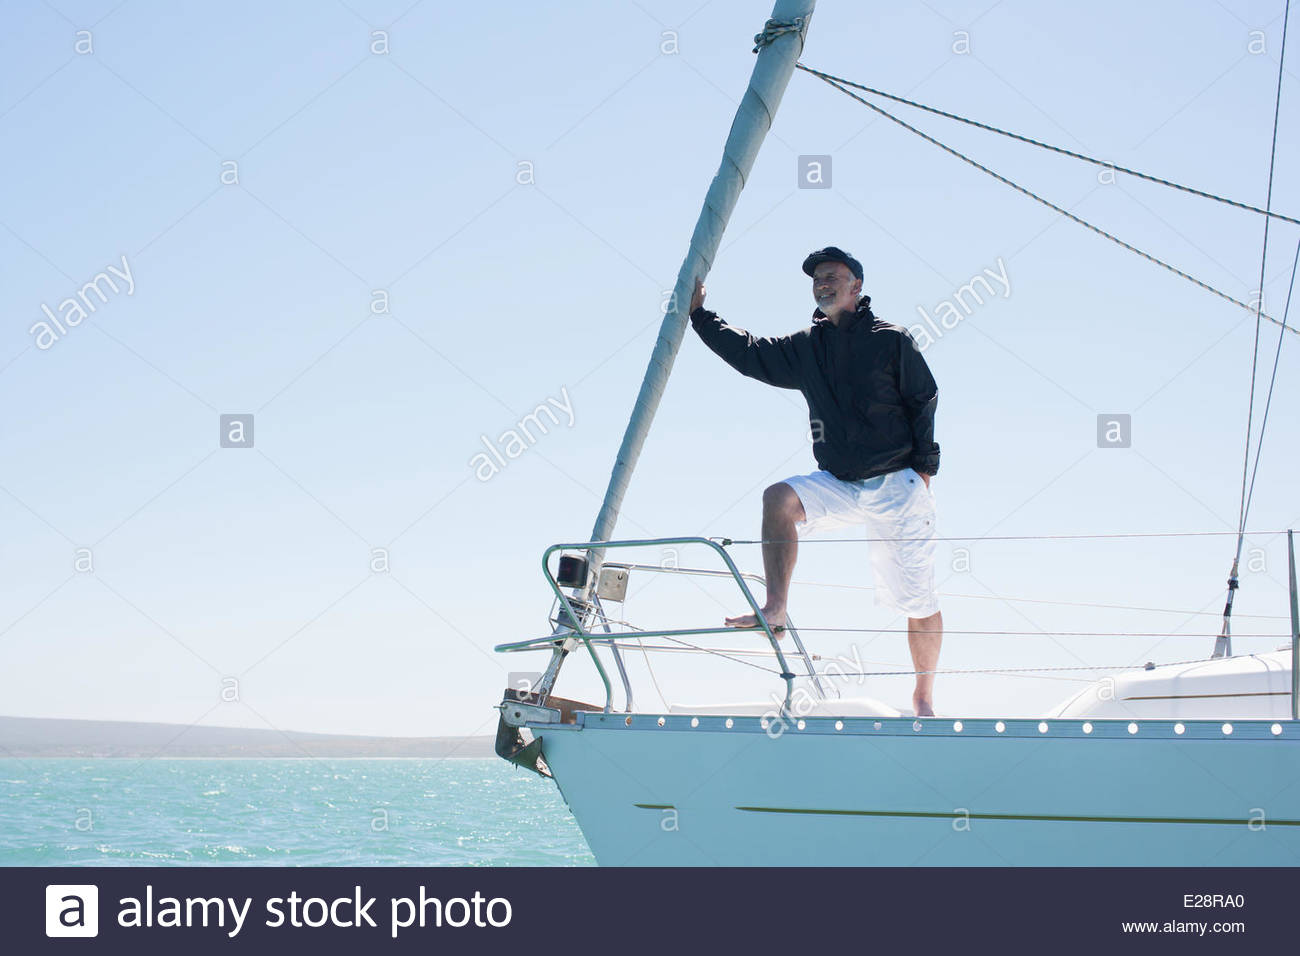 Man standing on deck of sailboat - Stock Image